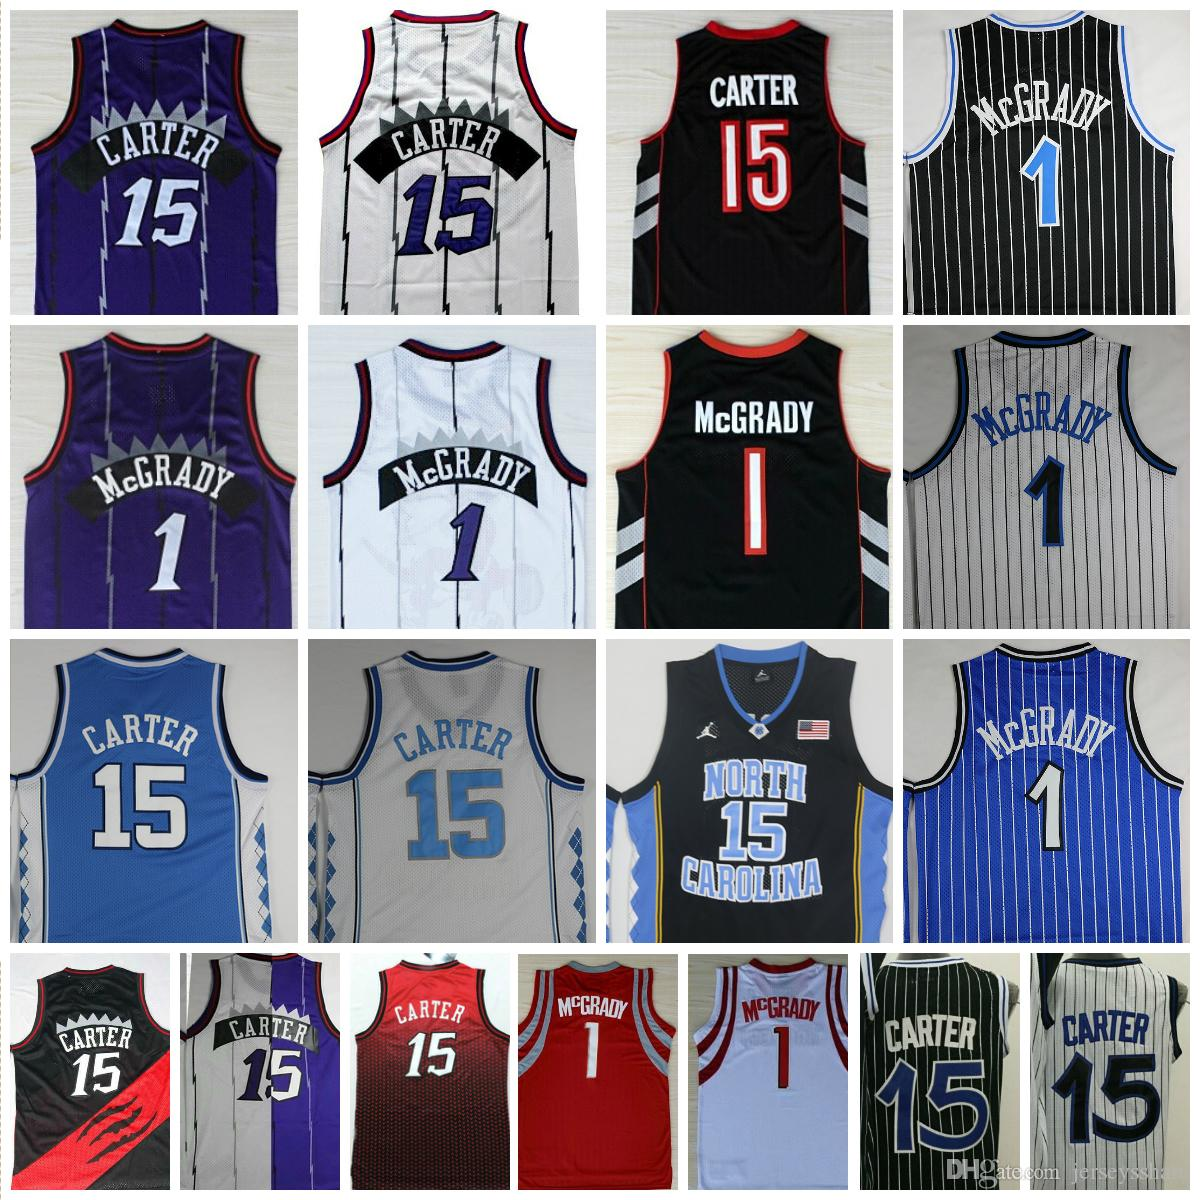 501bc928a 2019 Top Quality  15 Vince Carter Jersey Cheap  1 Tracy McGrady Jersey  North Carolina College Mens Jersey Purple Black White Stitched Shirts From  ...